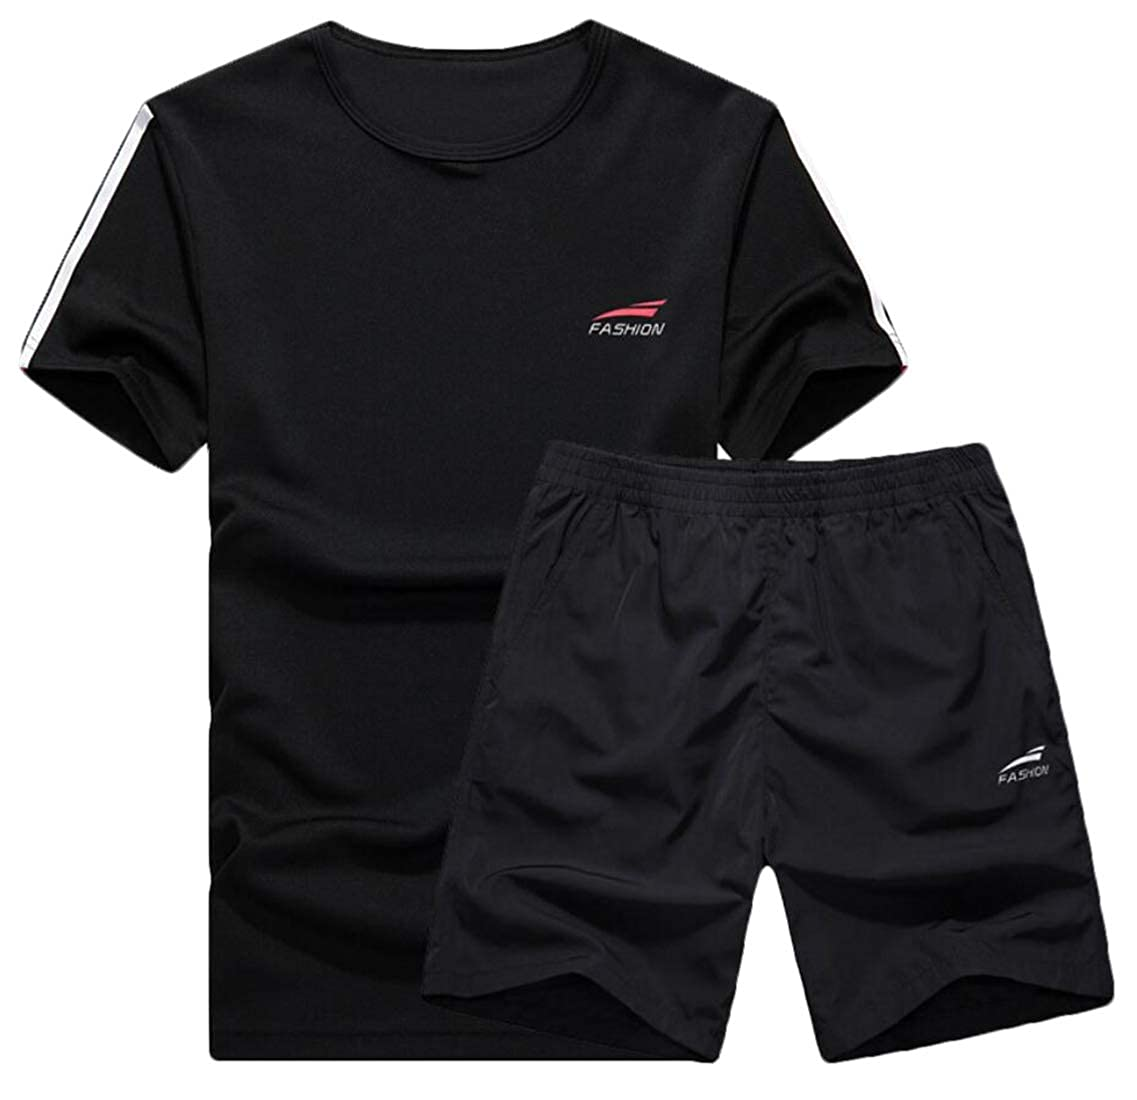 WSPLYSPJY Mens Tracksuit Shirts and Shorts Running Jogging Athletic Sports Set